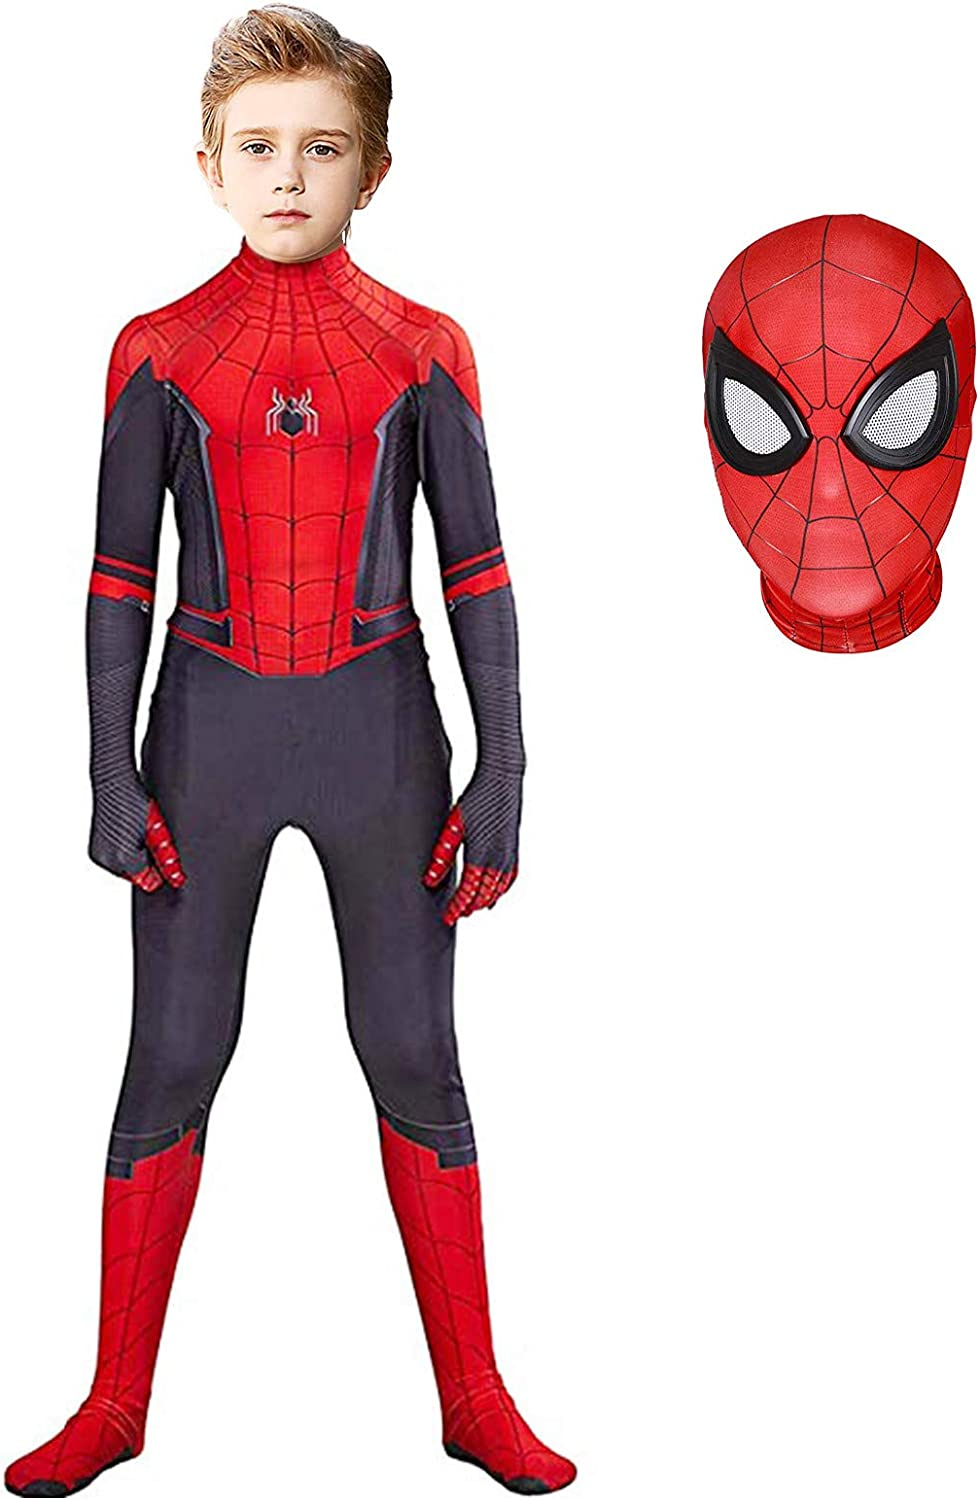 Superhero Costume Bodysuit for Kids Spandex Zentai Halloween Cosplay Jumpsuit 3D Style